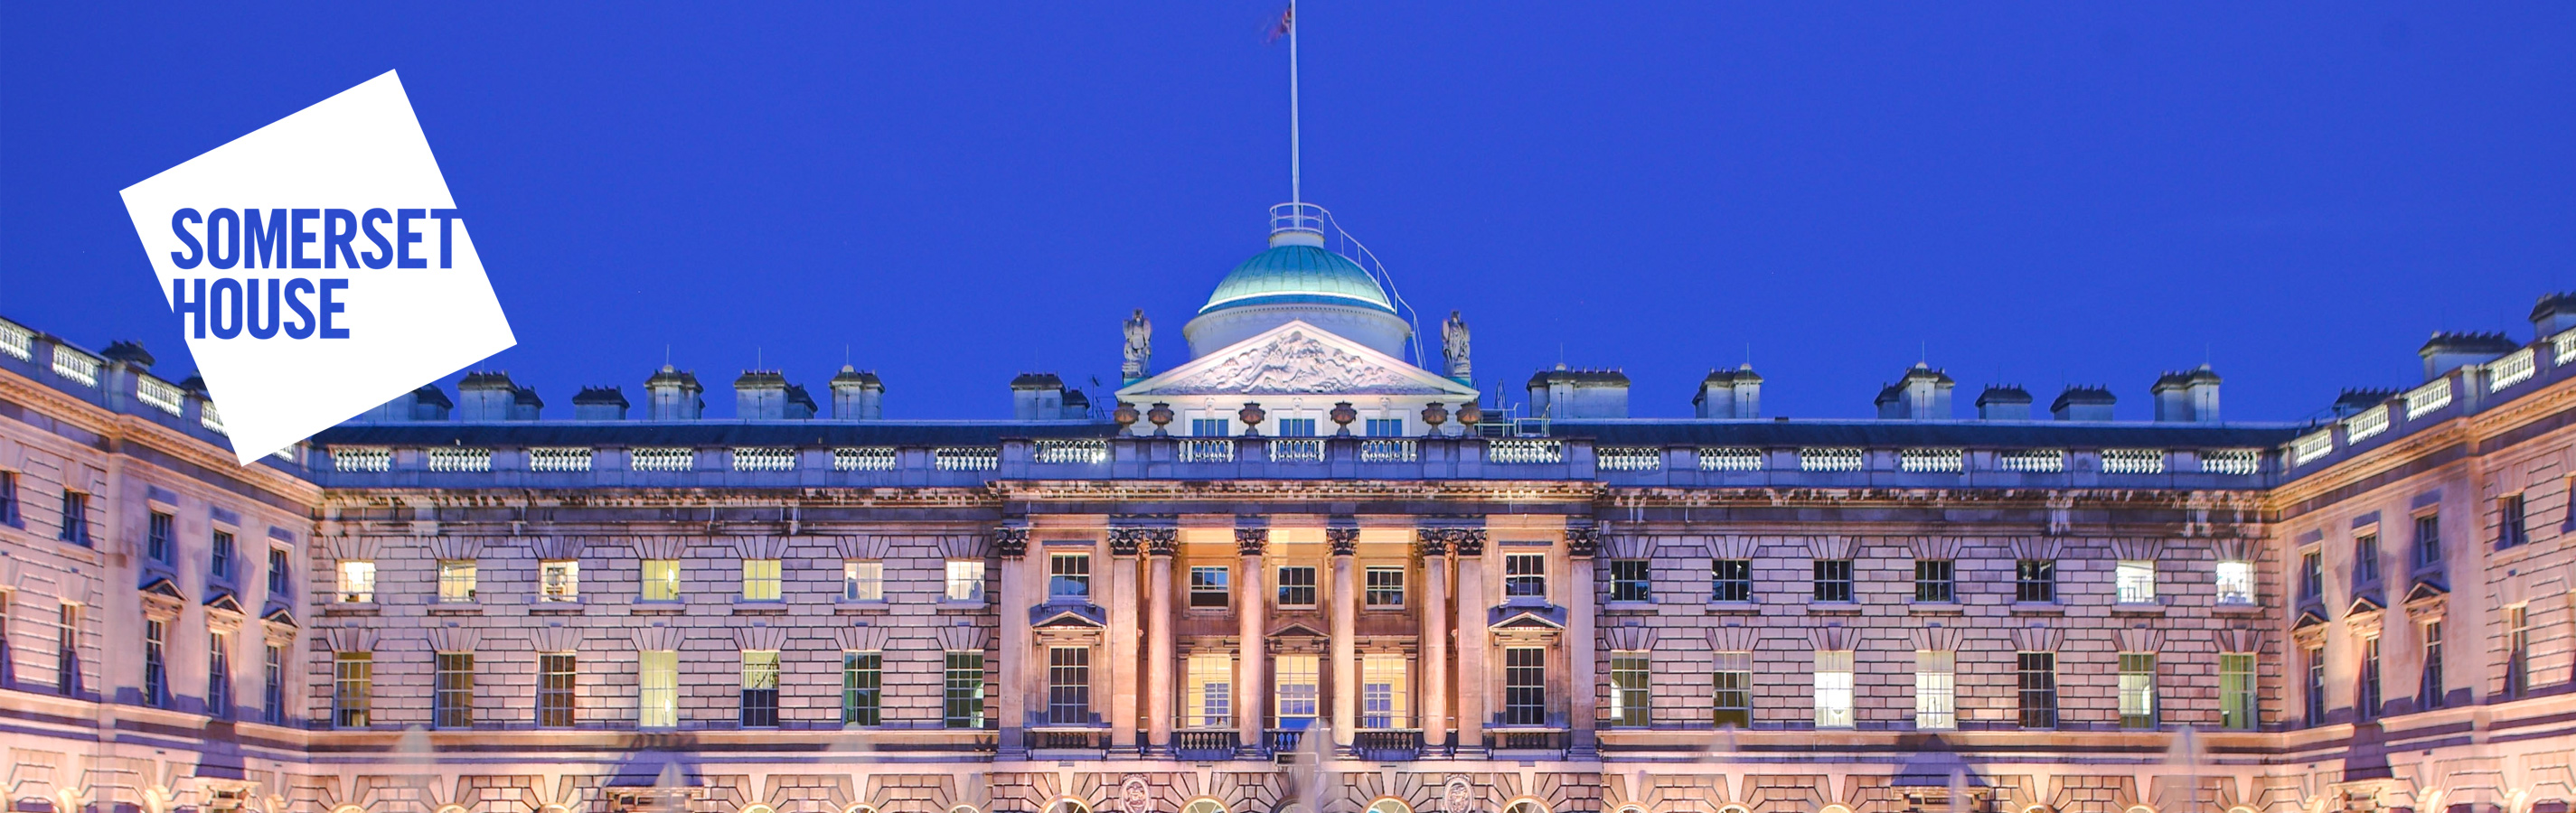 Somerset House Header